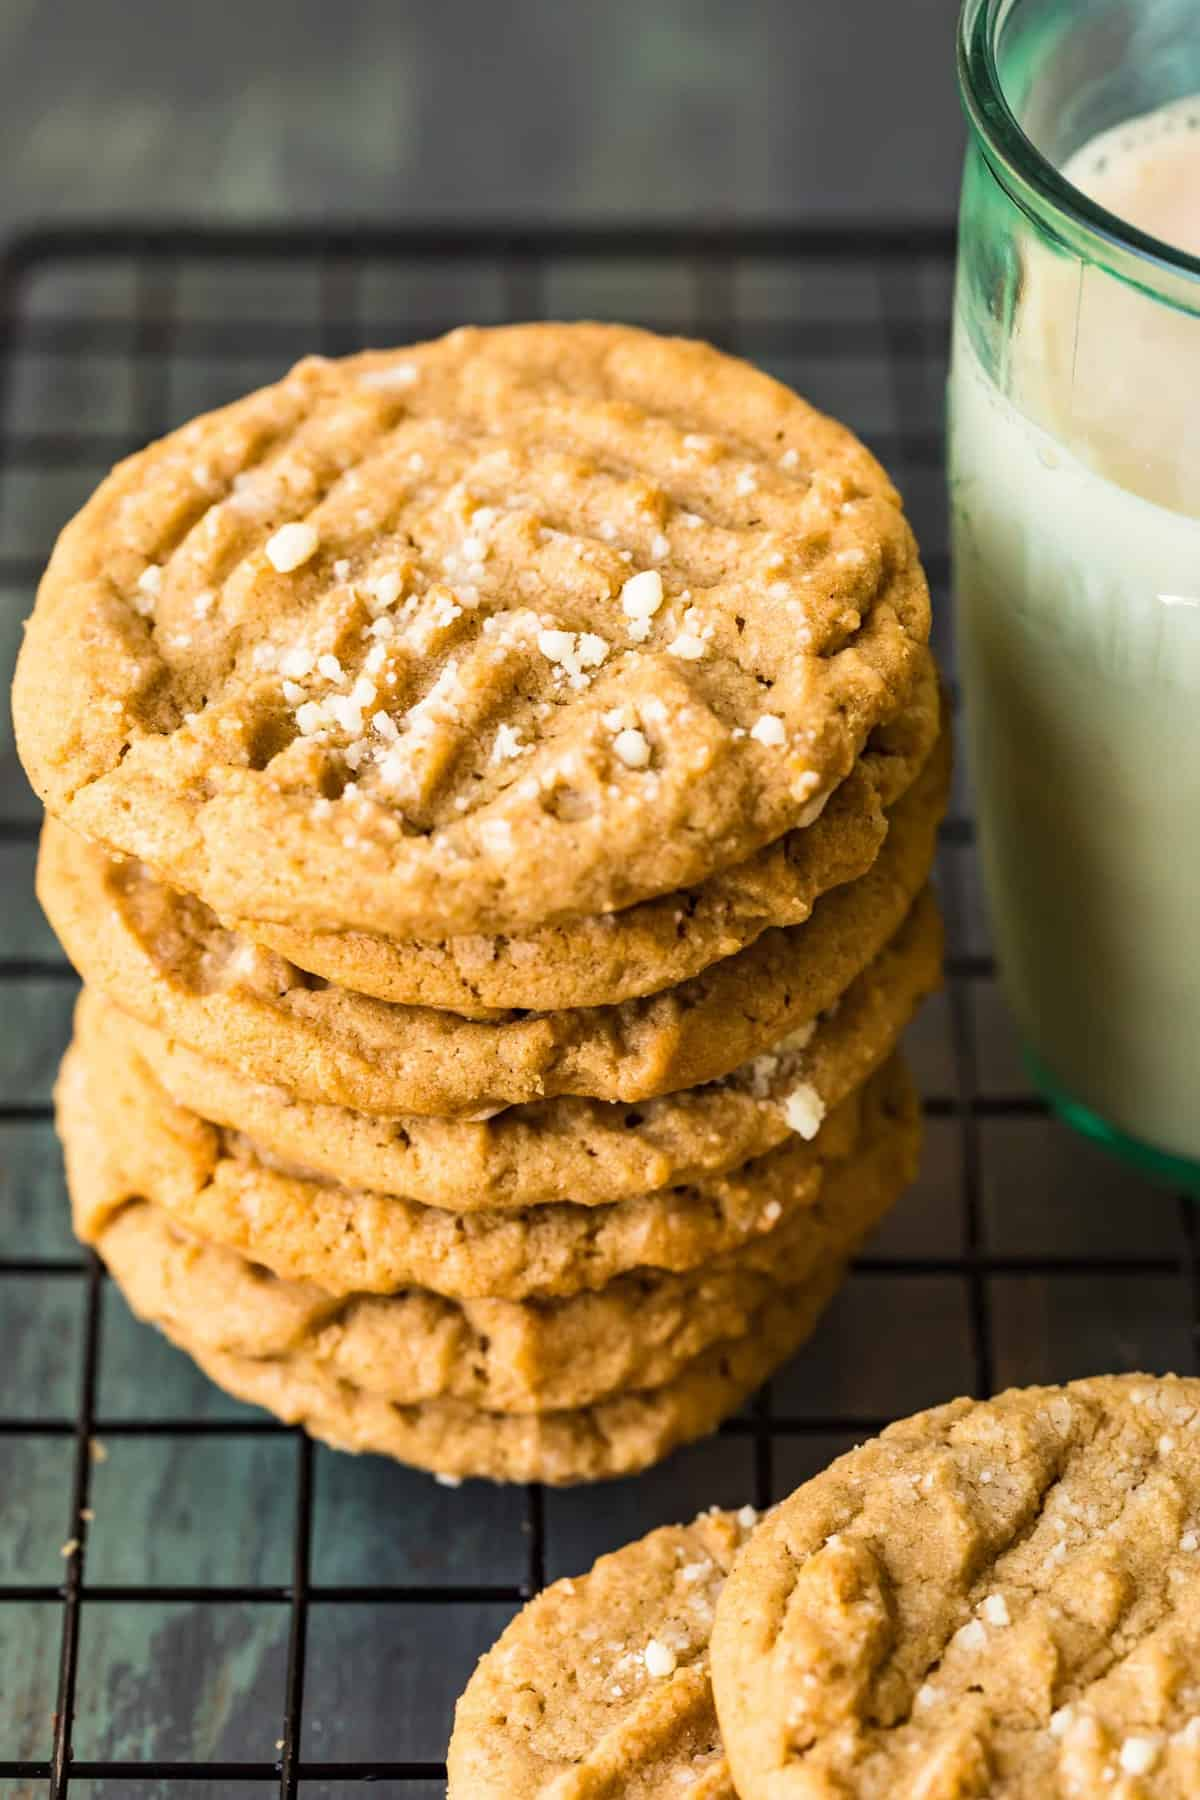 Six cookies stacked on top of each other